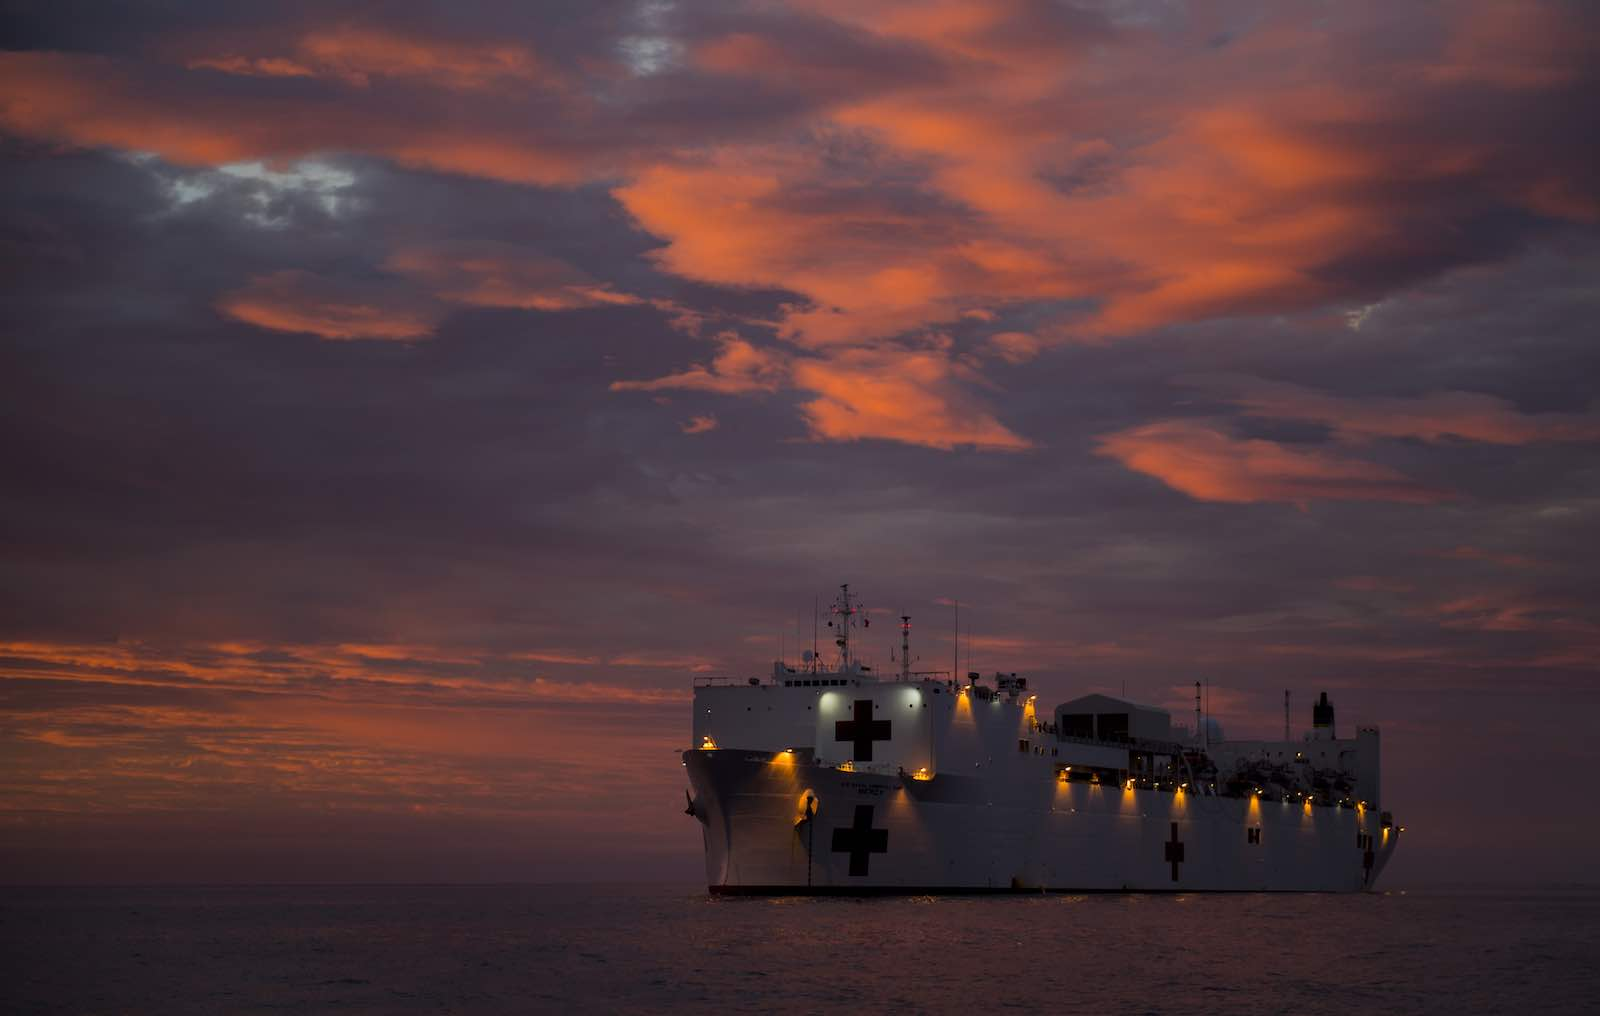 The world's largest hospital ship, USNS Mercy, sits at anchor off Bougainville in 2015 (Photo: Gonzalo Alonso/Flickr)